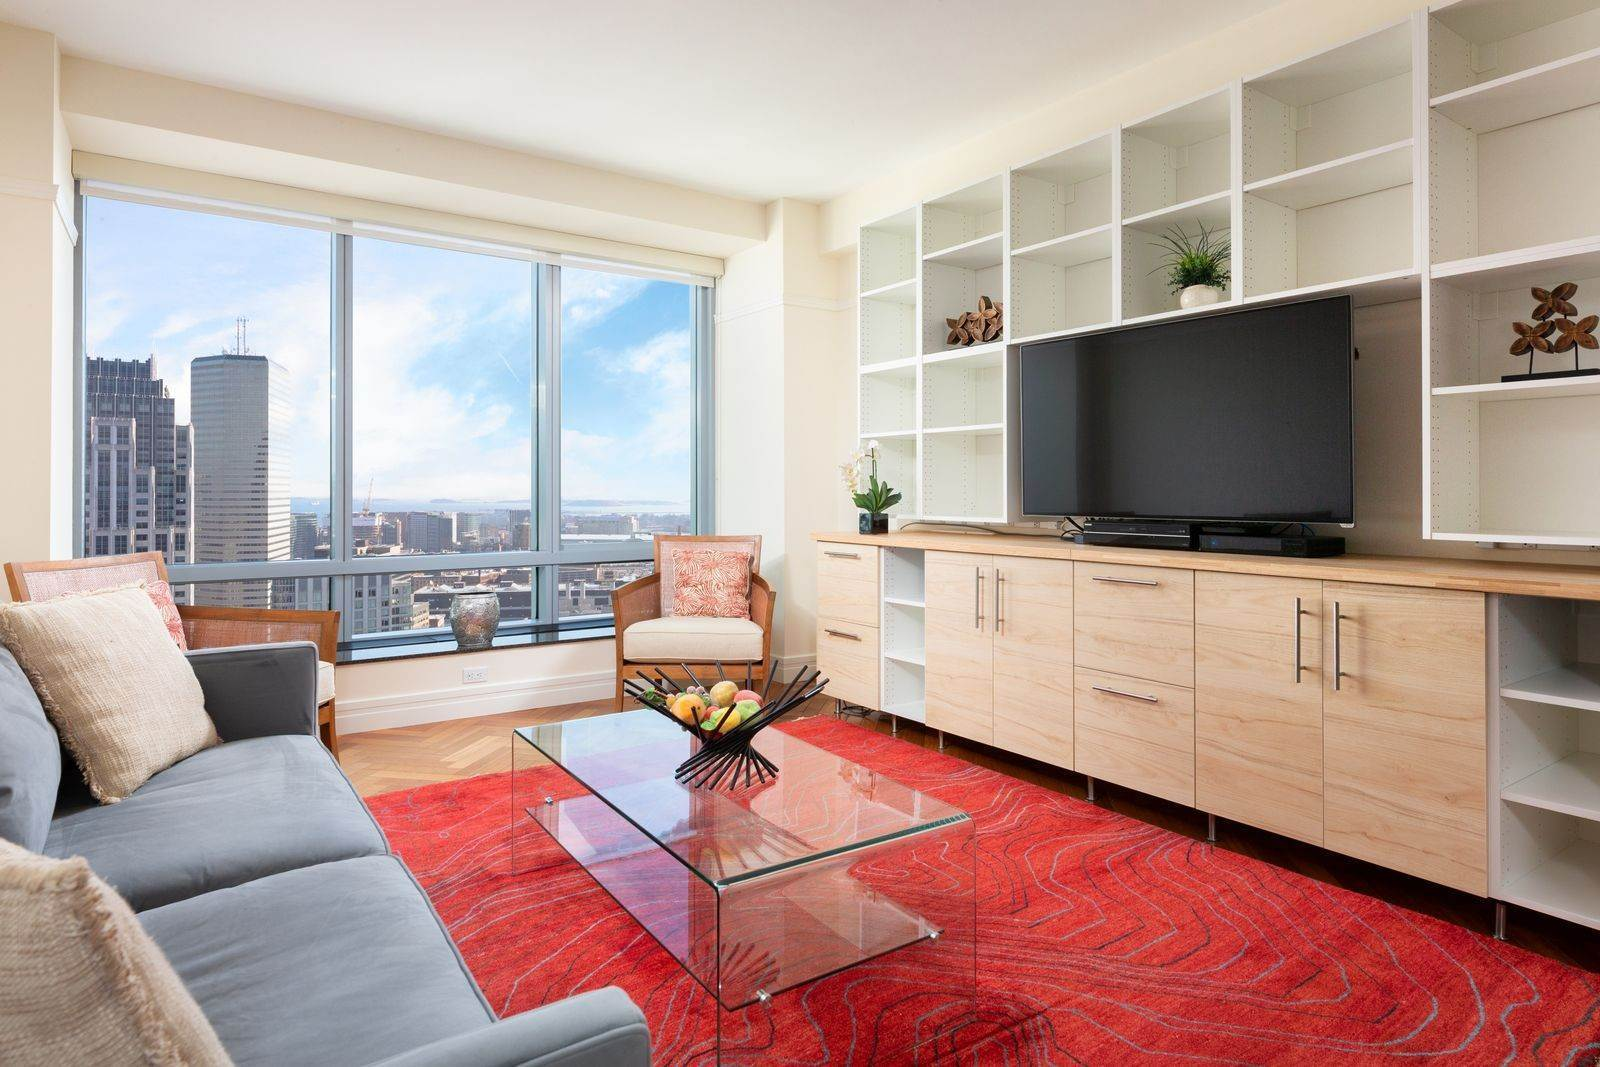 Single Family Home для того Продажа на Ritz-Carlton Residences, Unit 37A 2 Avery St Boston, Массачусетс,02111 Соединенные Штаты